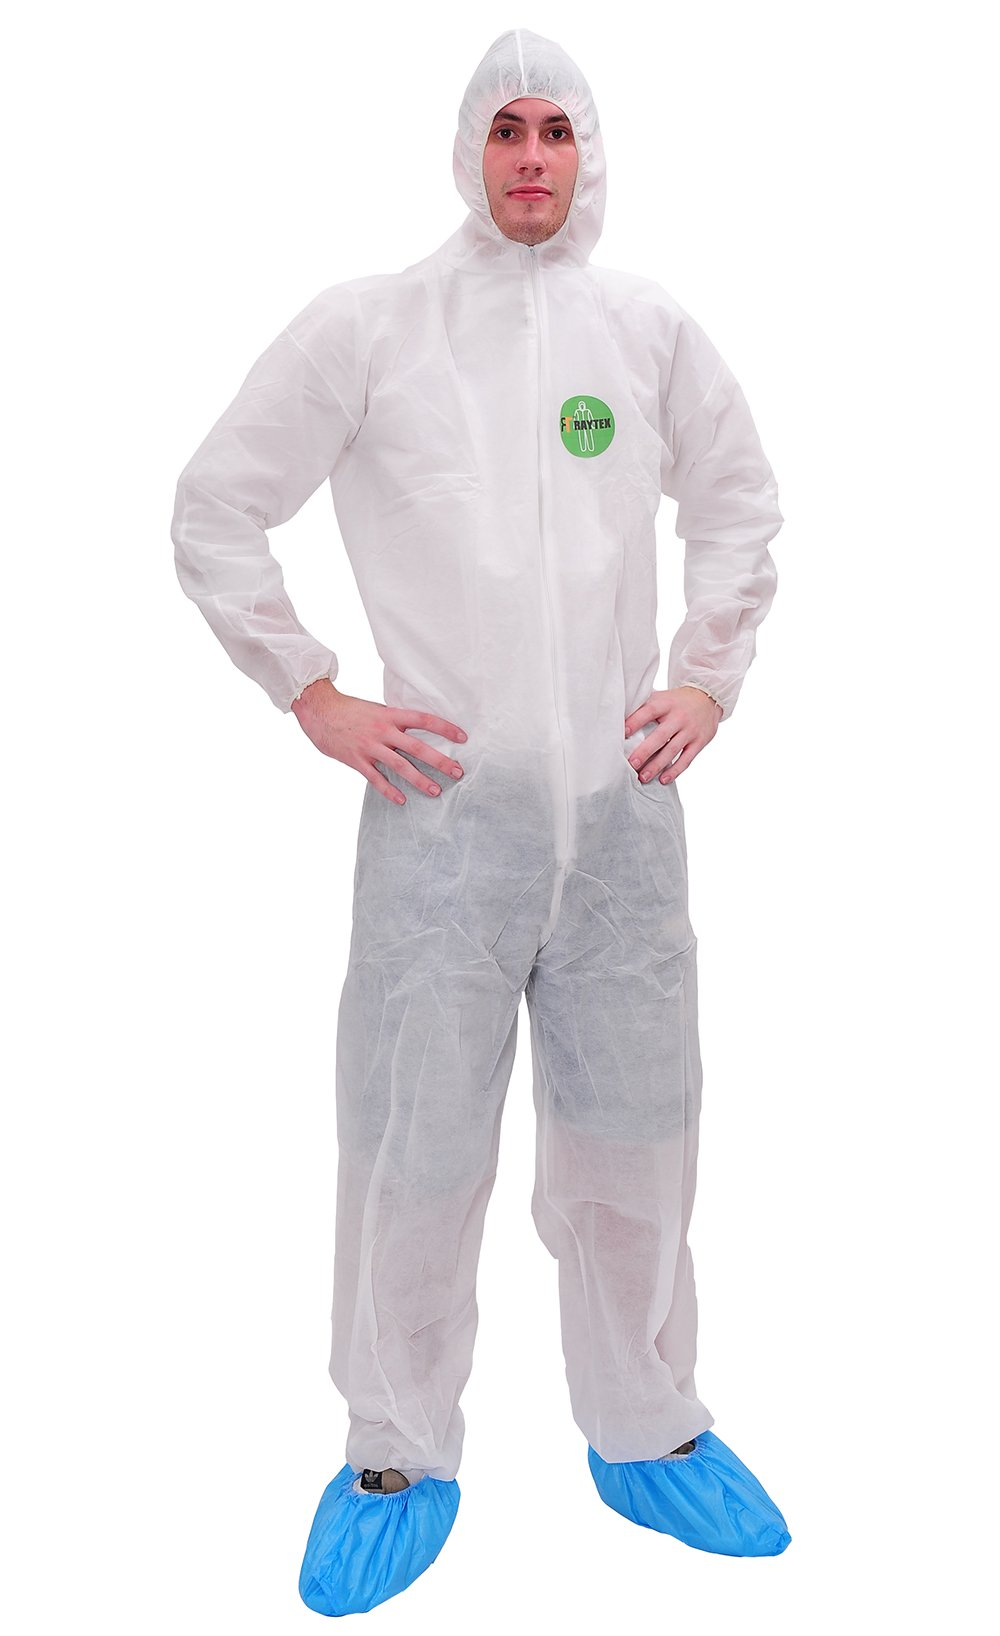 Raygard 30003 Polypropylene Disposable Protective Hooded Coverall Chemical Suit with Elastic Wrists, Ankles Zipper Front Closure for Spray Painting Food Service(X-Large,White,Pack of 25)